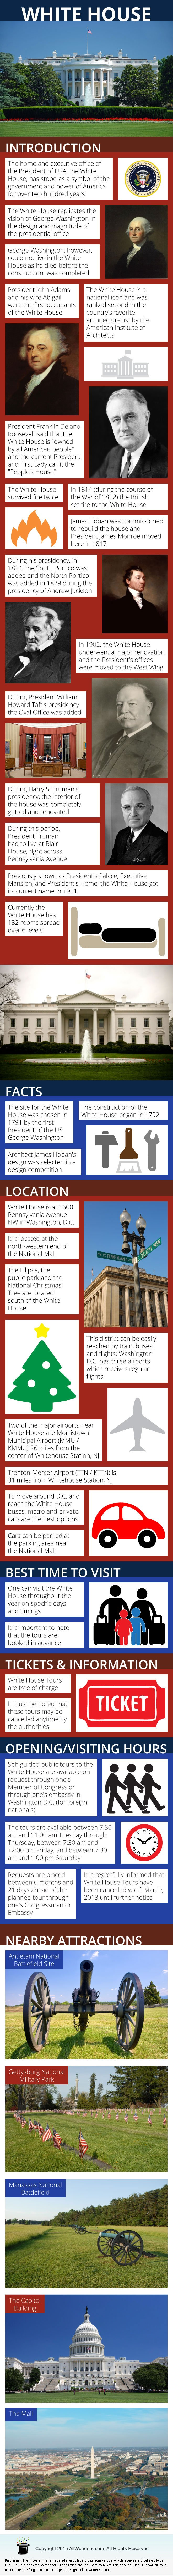 White House Infographic